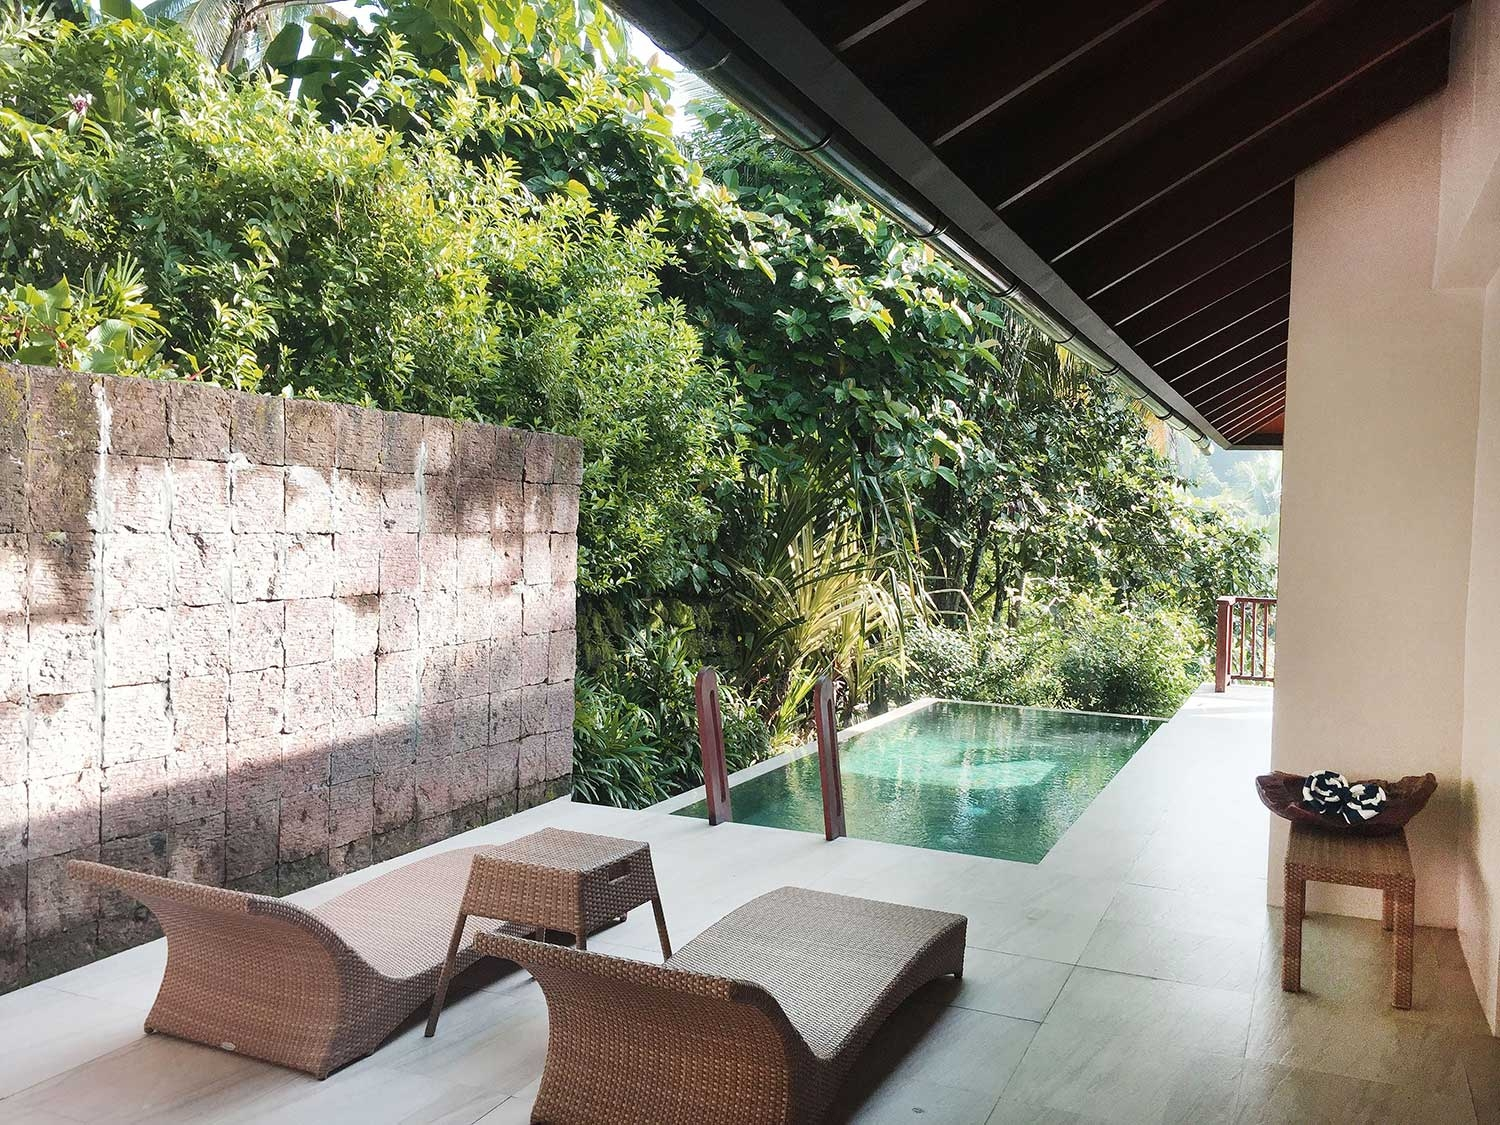 A private pool is shaded by the roof of the villa, as well as the neighbouring jungle